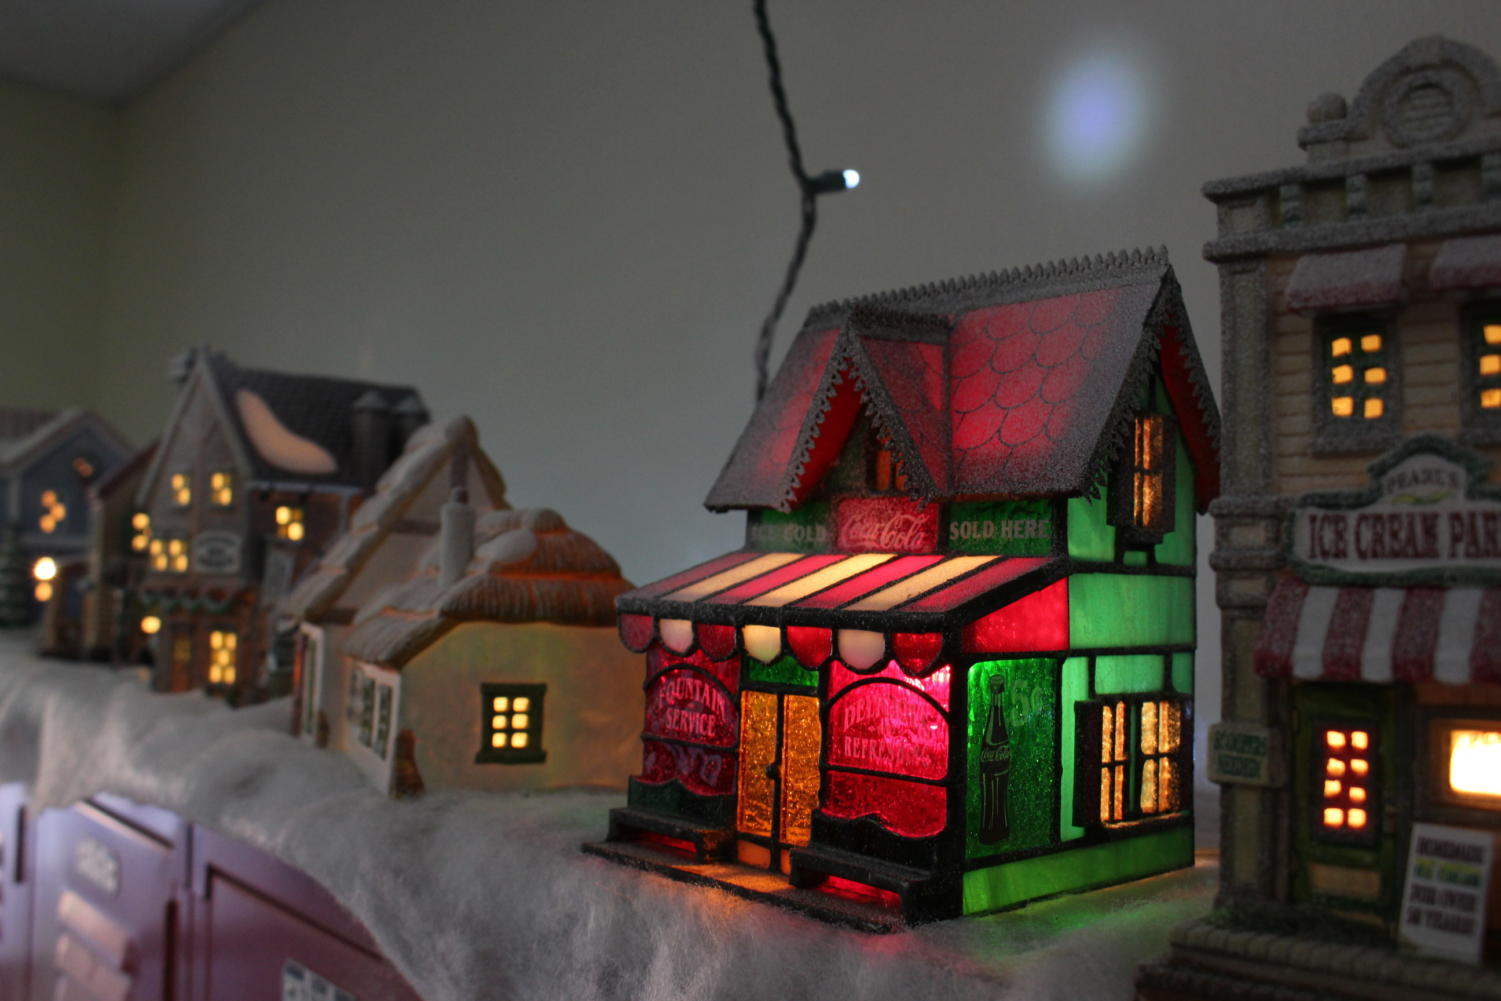 Coppell High School Emergency Medical Technician and Pharmacy tech teacher, Gary Beyers has set up a miniature holiday village and a large wintertime train set display in and out of A110. The Christmas village has fake snow and music, with a train track set up inside his room. A wreath hangs on Beyer's door.